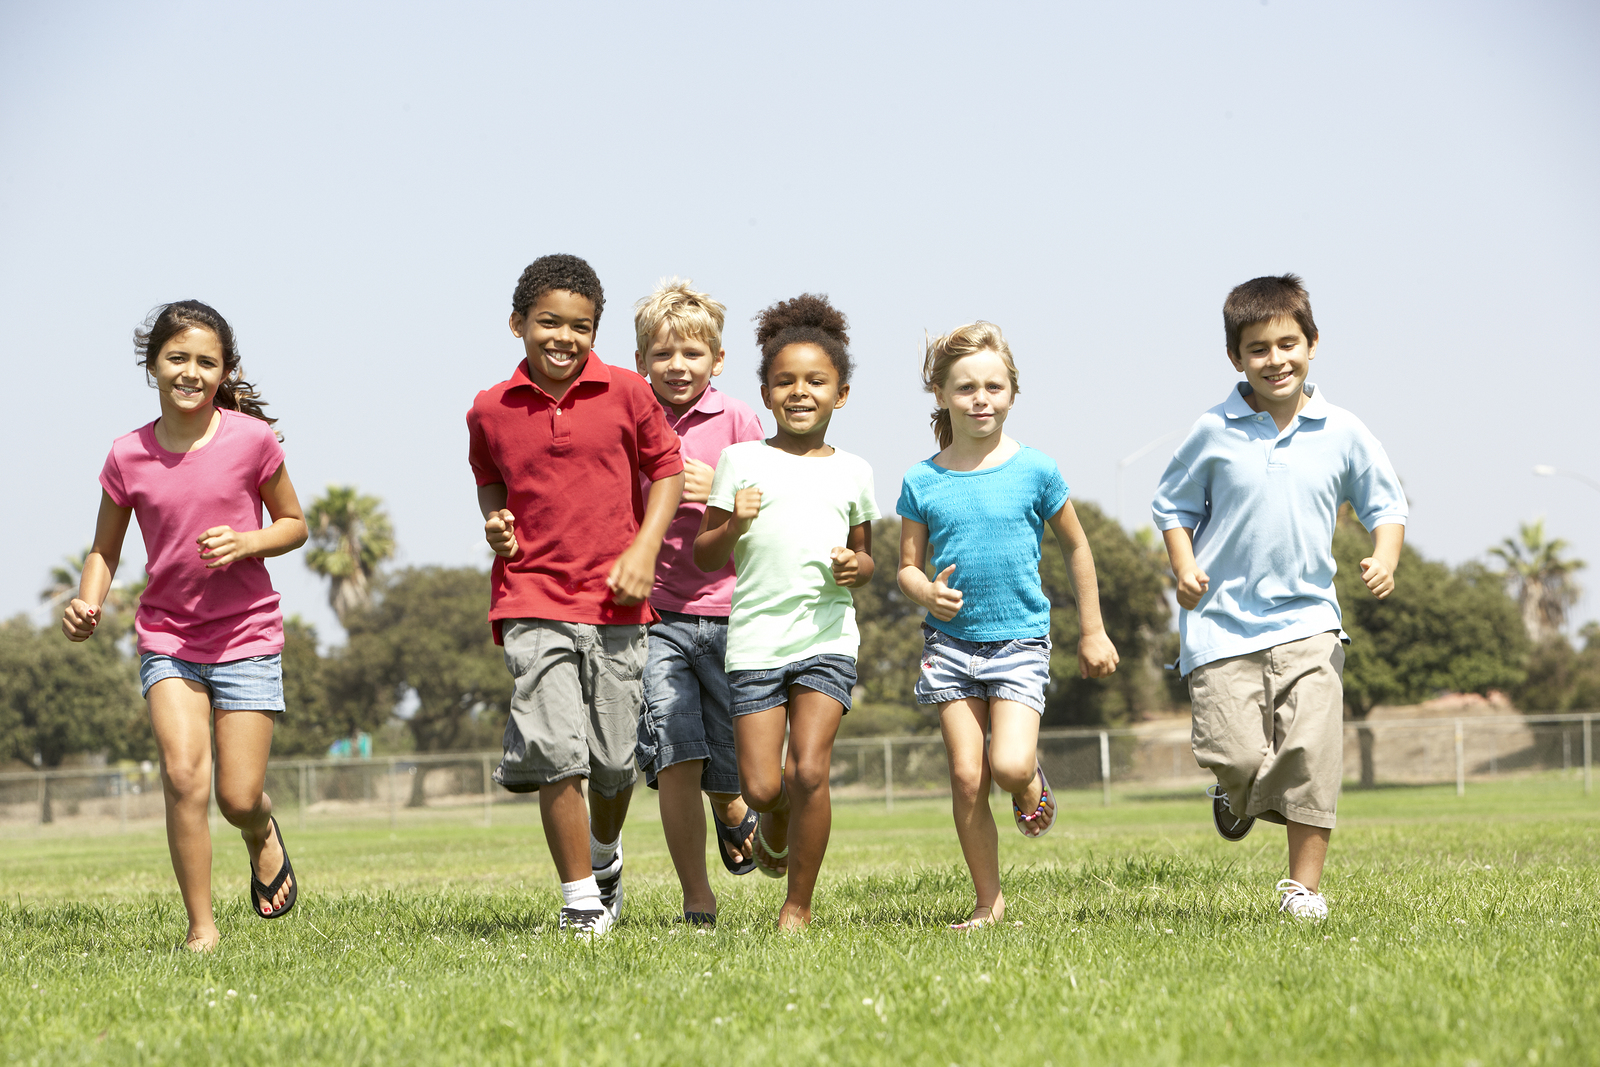 8 Great Ways to Engage Children Outdoors